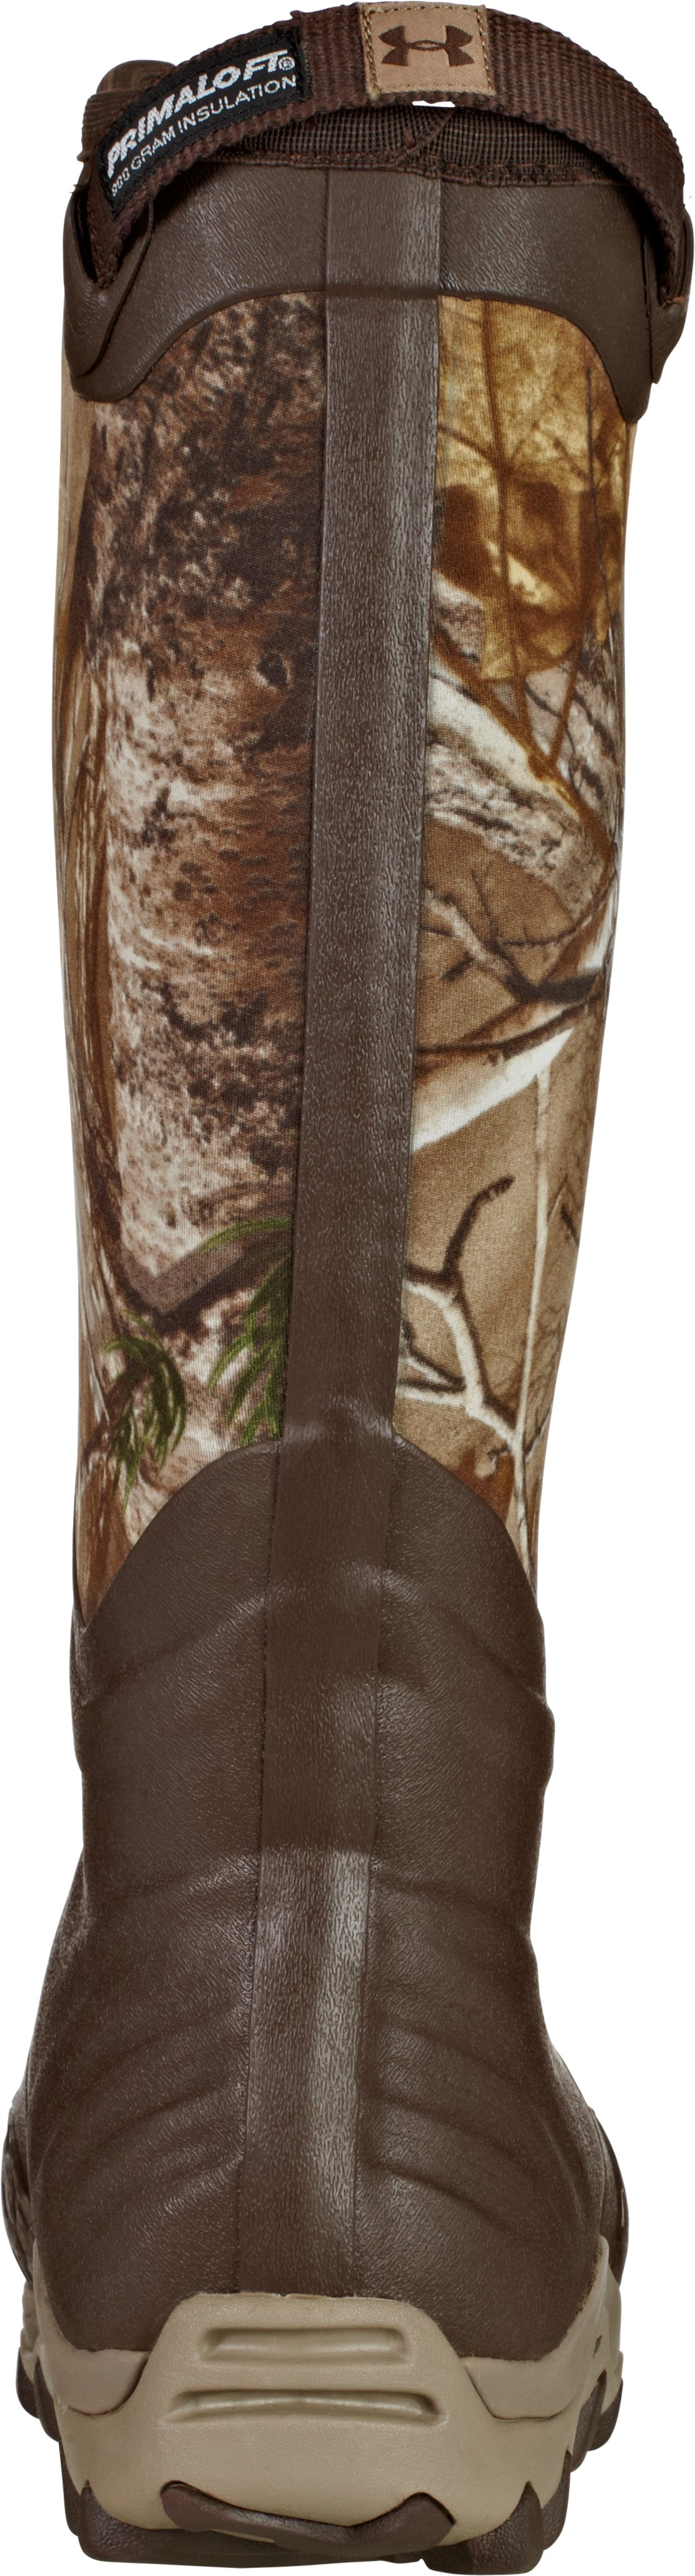 Men's UA H.A.W. 800g Hunting Boots, REALTREE AP-XTRA